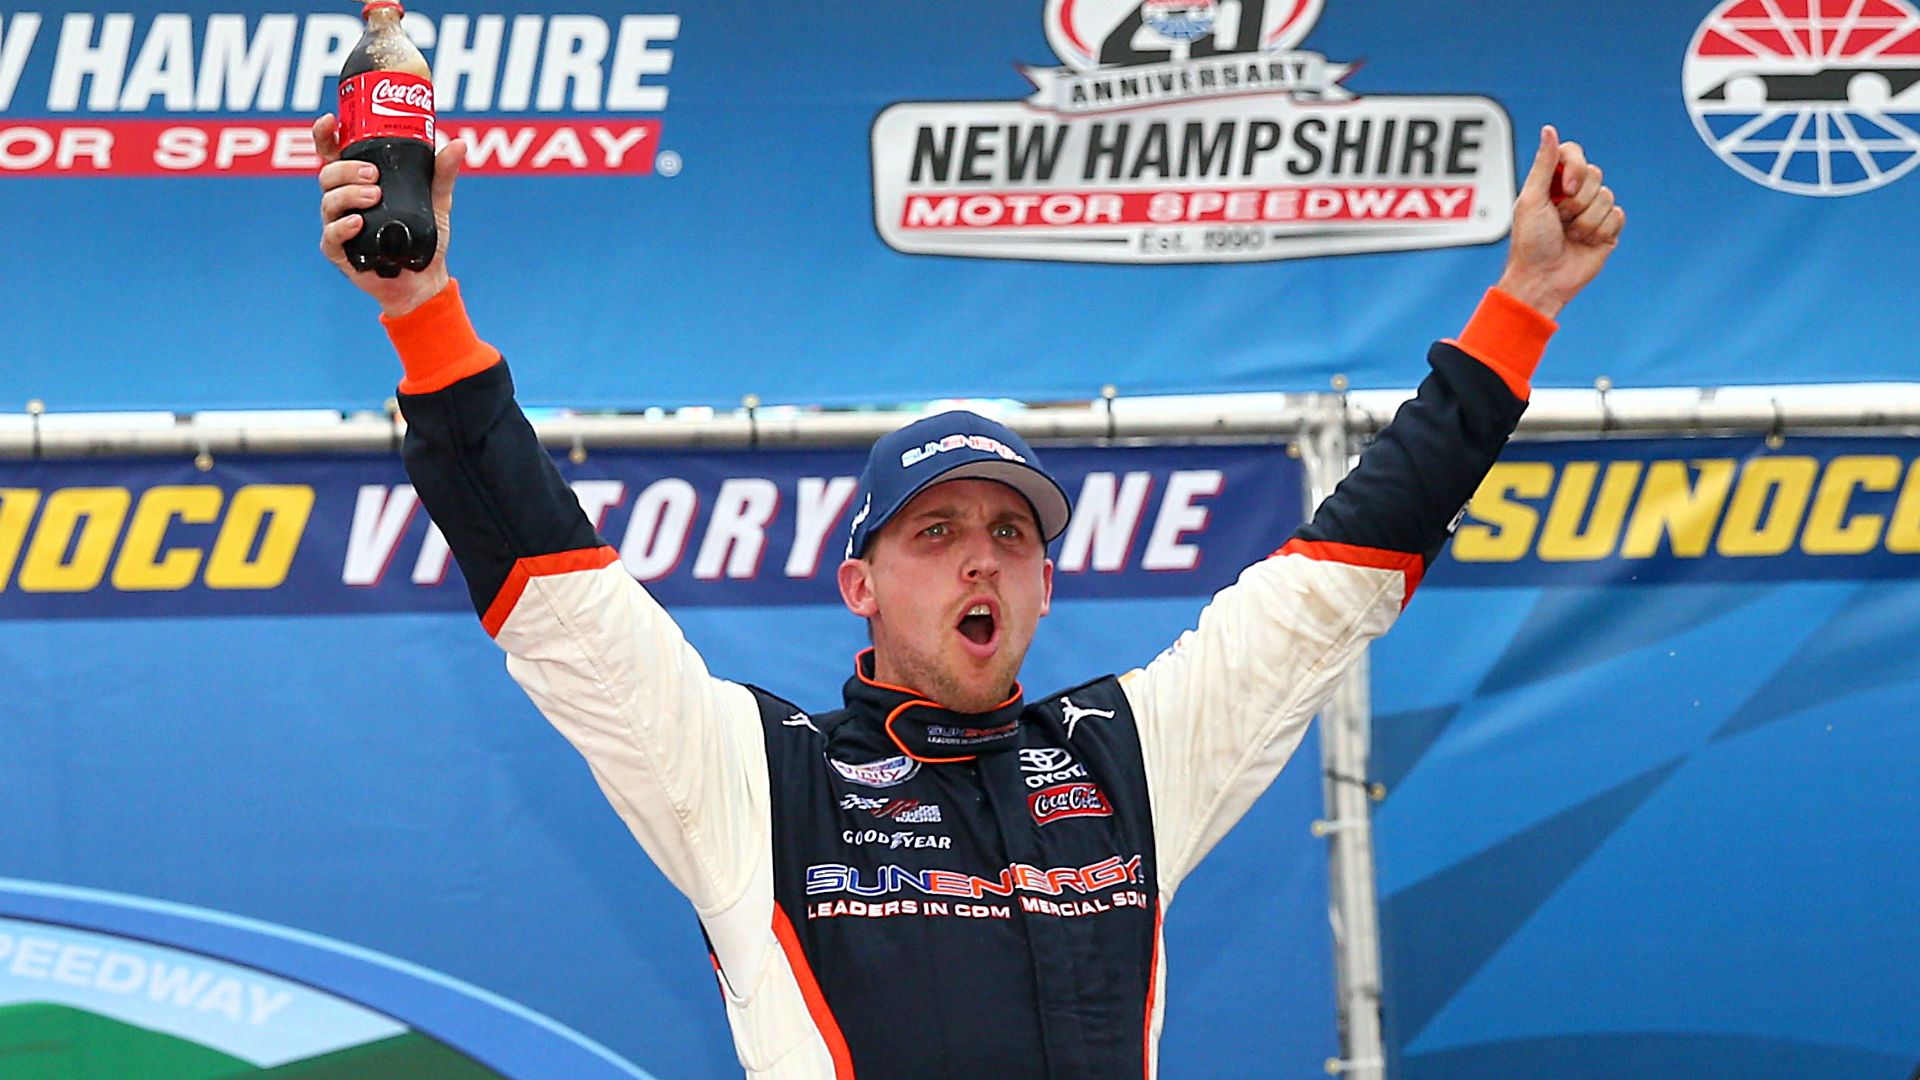 Denny Hamlin wins at New Hampshire